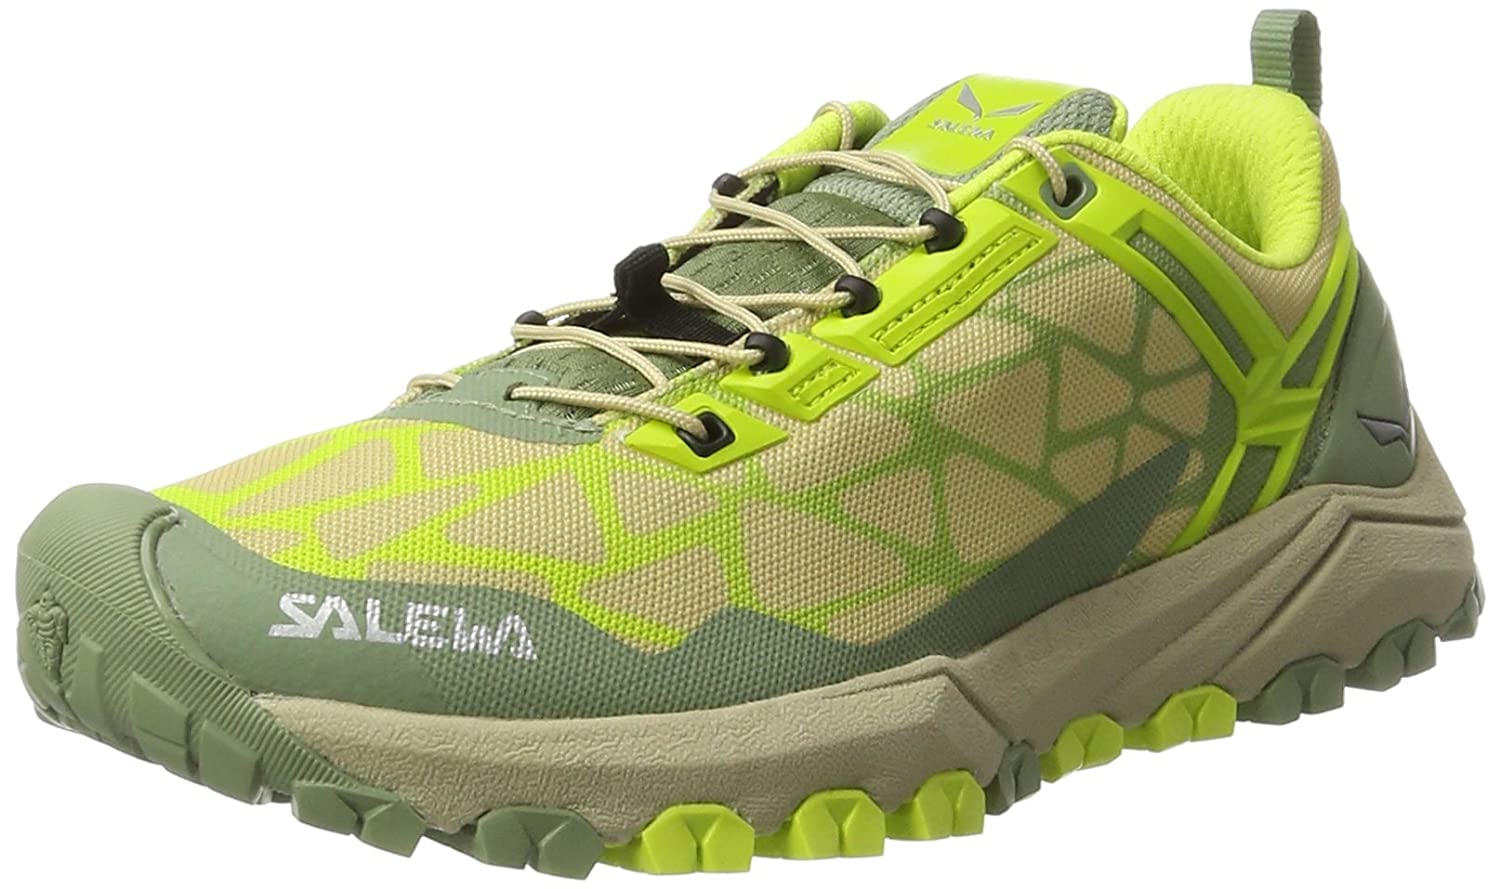 Womens Damen Multi Track Halbschuh Multisport Outdoor Shoes, Dark Denim-Aruba Blue, 6 UK Salewa